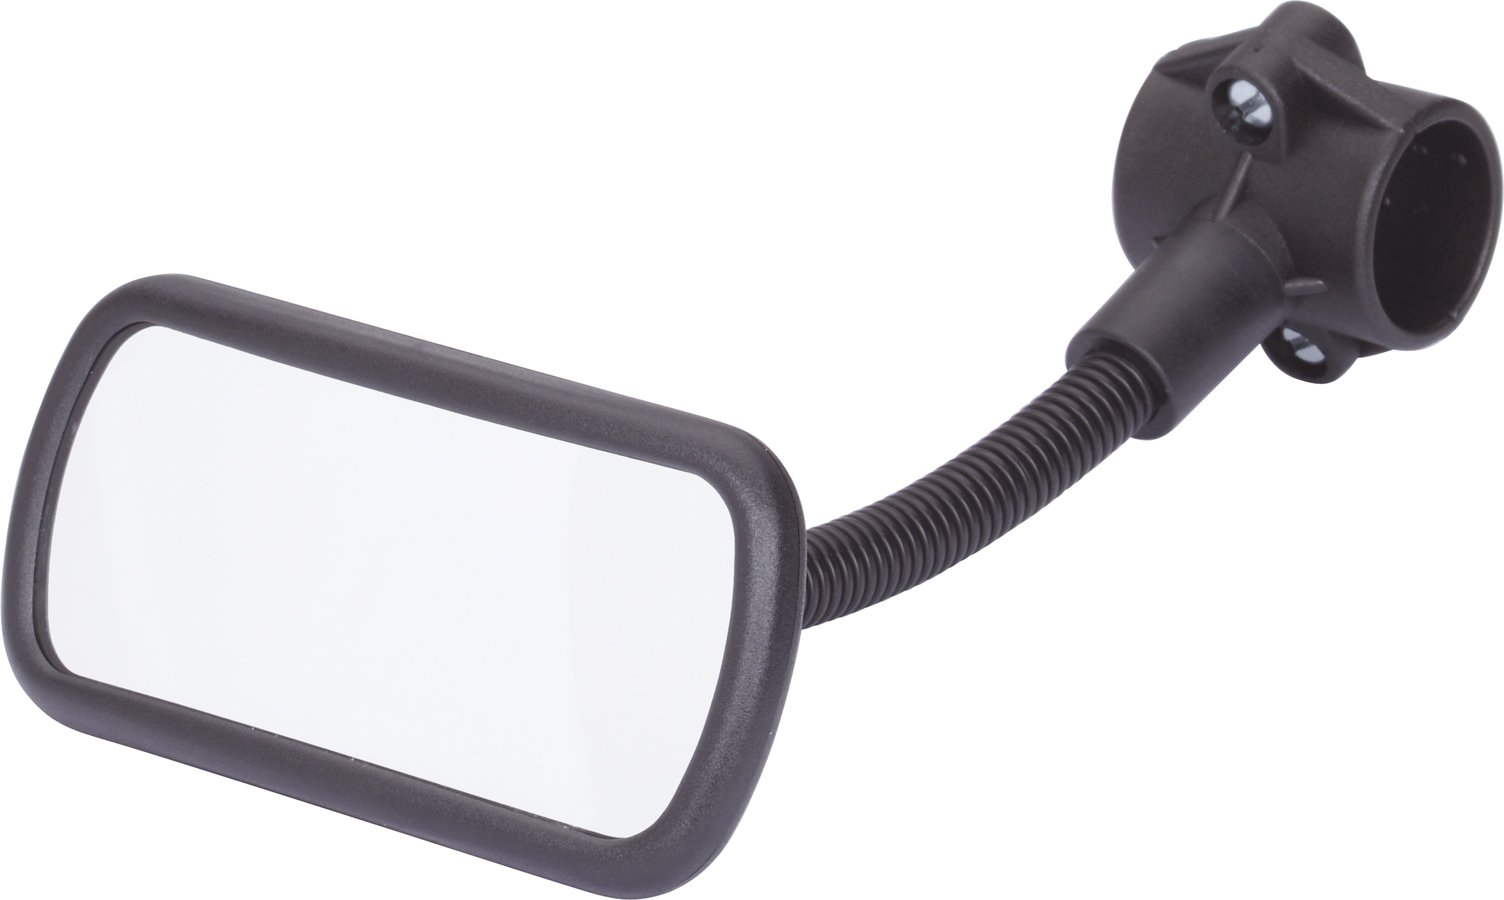 HR Imotion HR 10411101 Bicycle rear view Mirror 55 x 115 x 210 mm/2,2 x 4,6 x 8,1 inch - with adjustable gooseneck Made in Germany